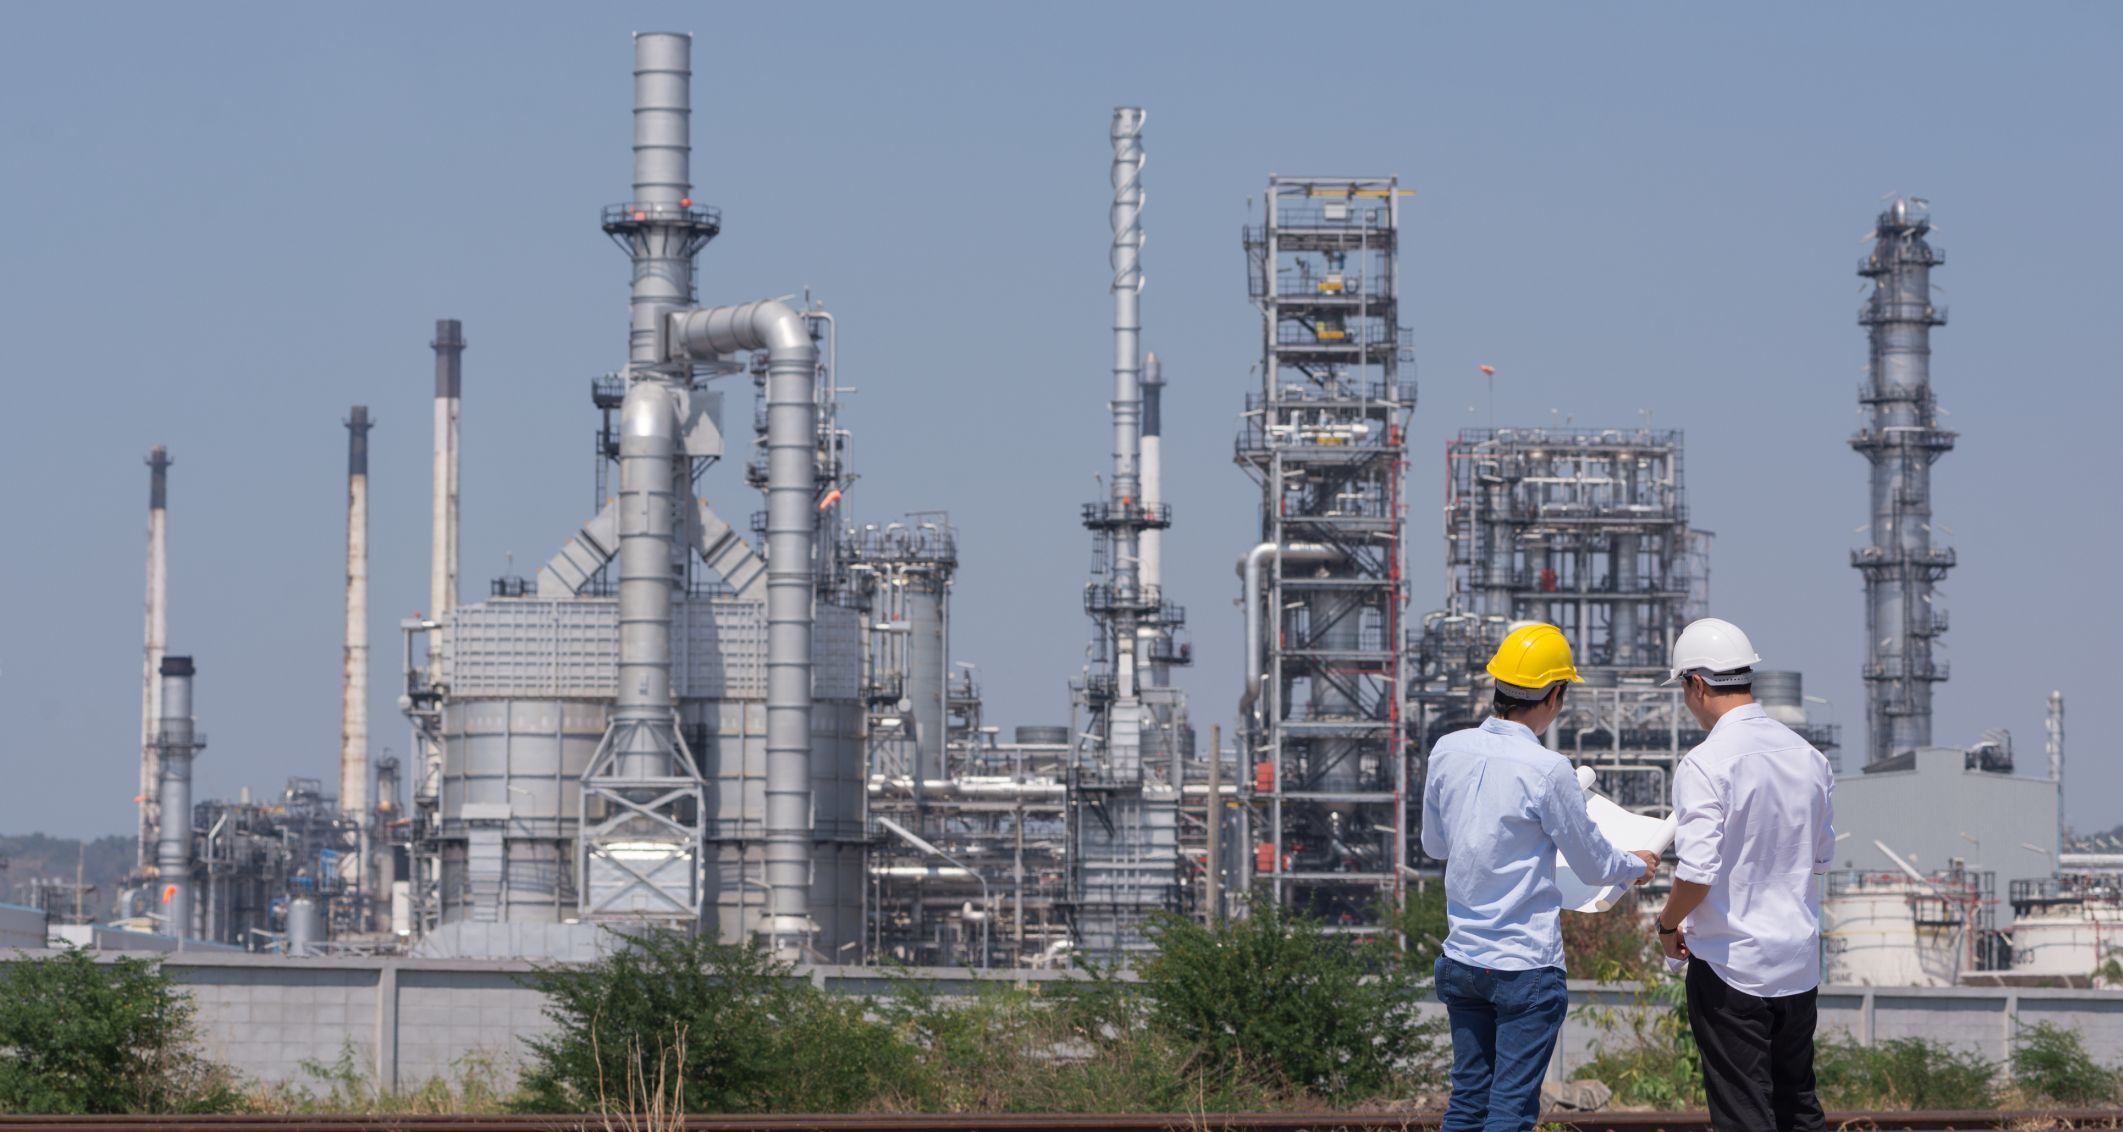 Mechanical Engineering working in Oil refinery